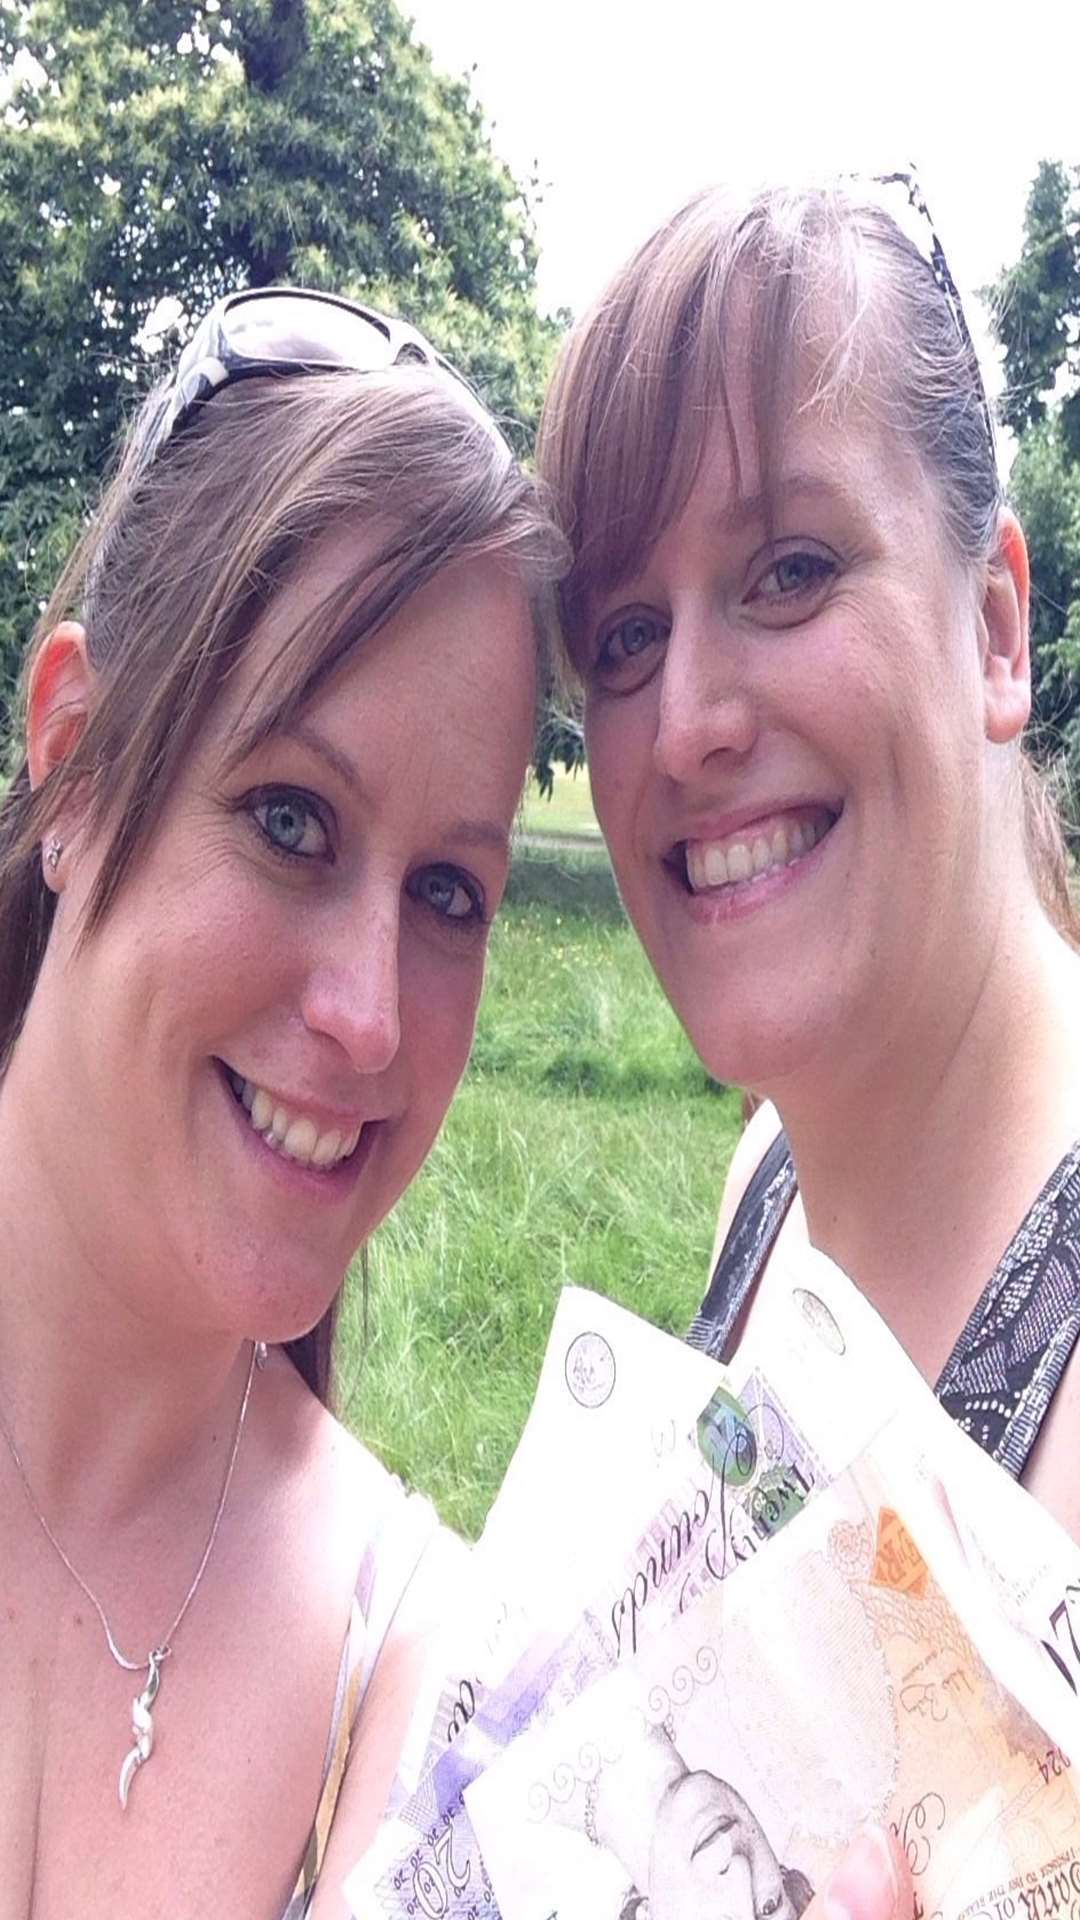 Amy and Kate Edwards tweeted this photo of themselves with the HiddenCash money